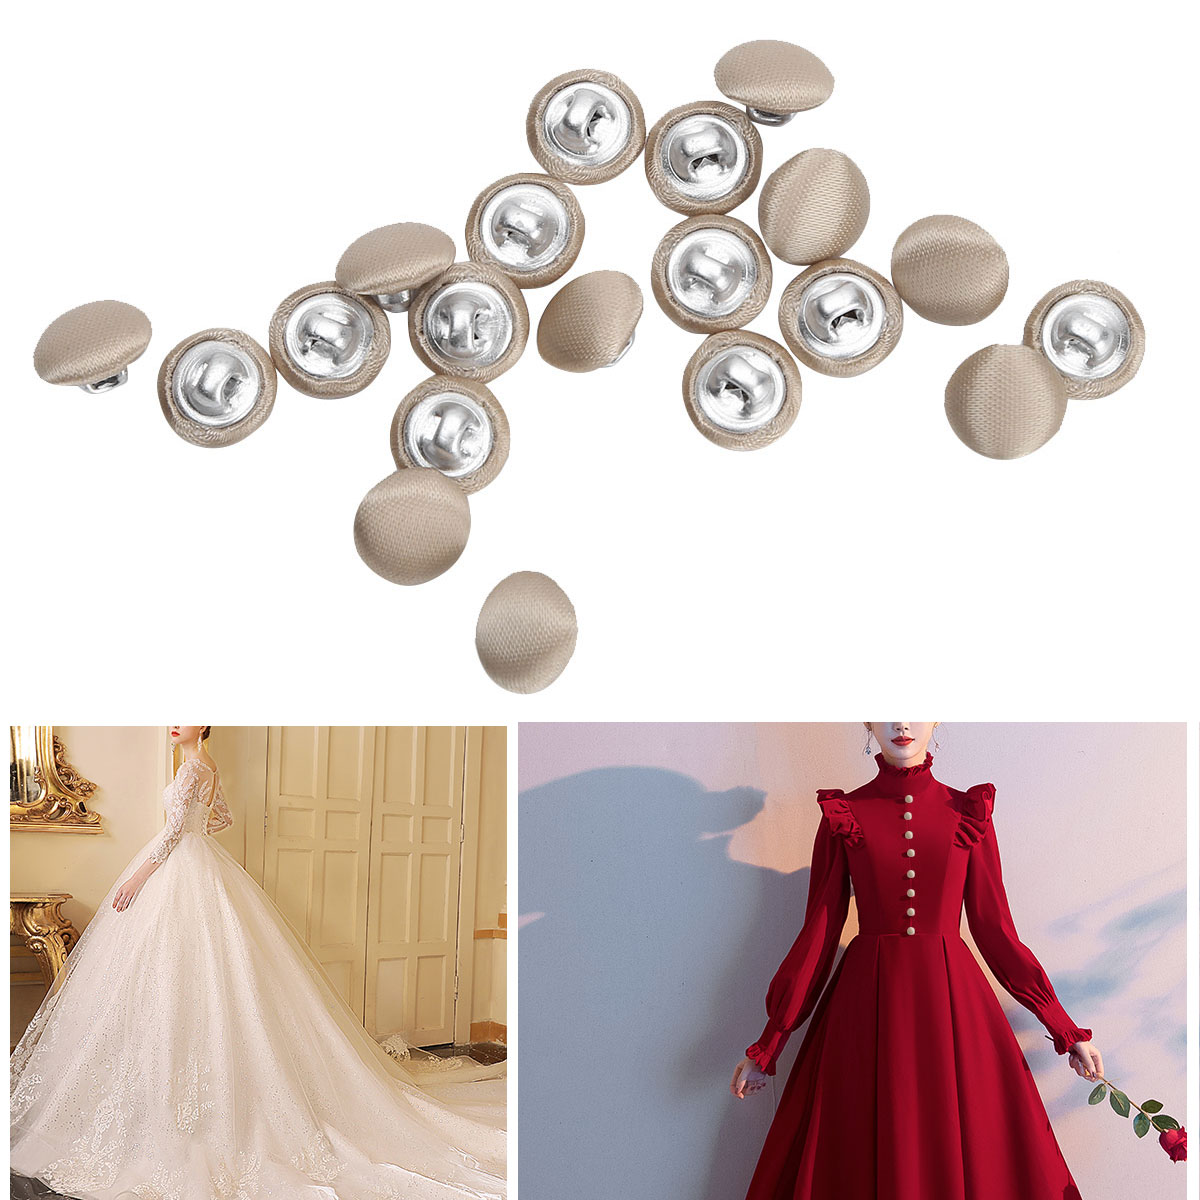 20Pcs 10mm Smooth Satin Covered  Metal Shank Buttons for Gowns Blouses Coats